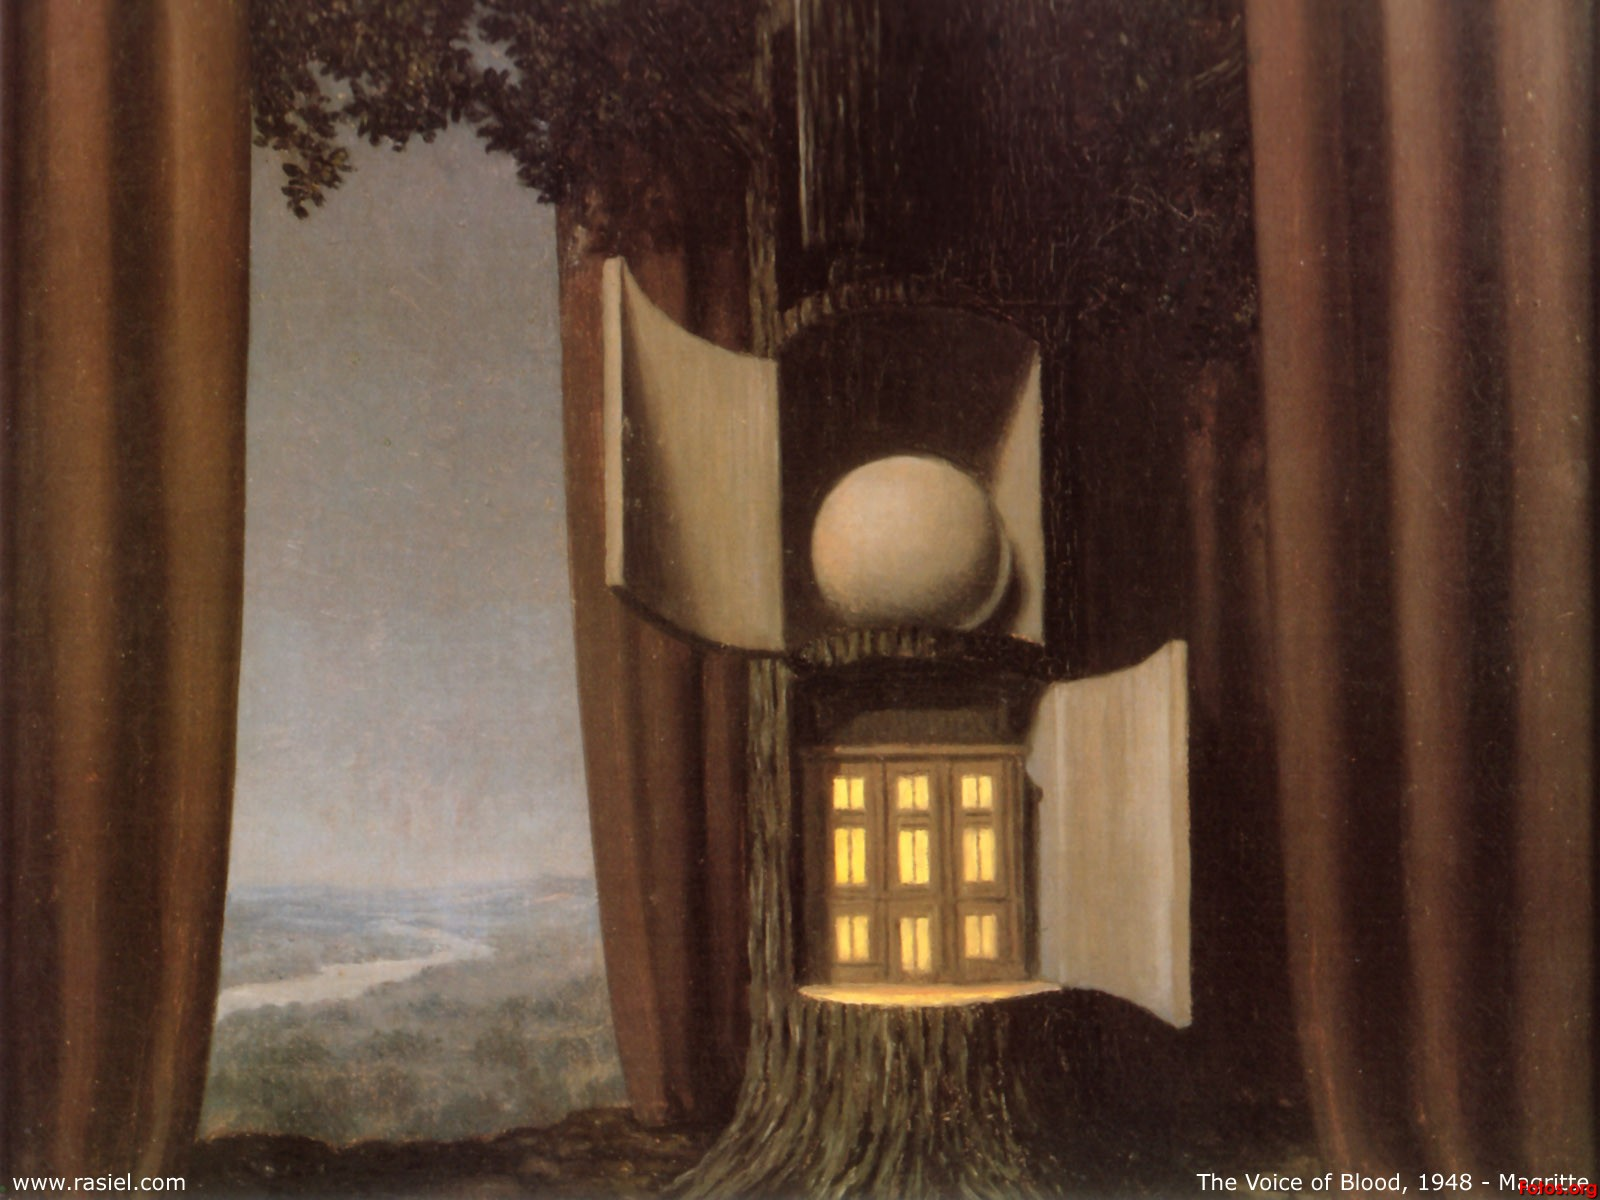 Magritte Wallpapers   500 Collection HD Wallpaper 1600x1200